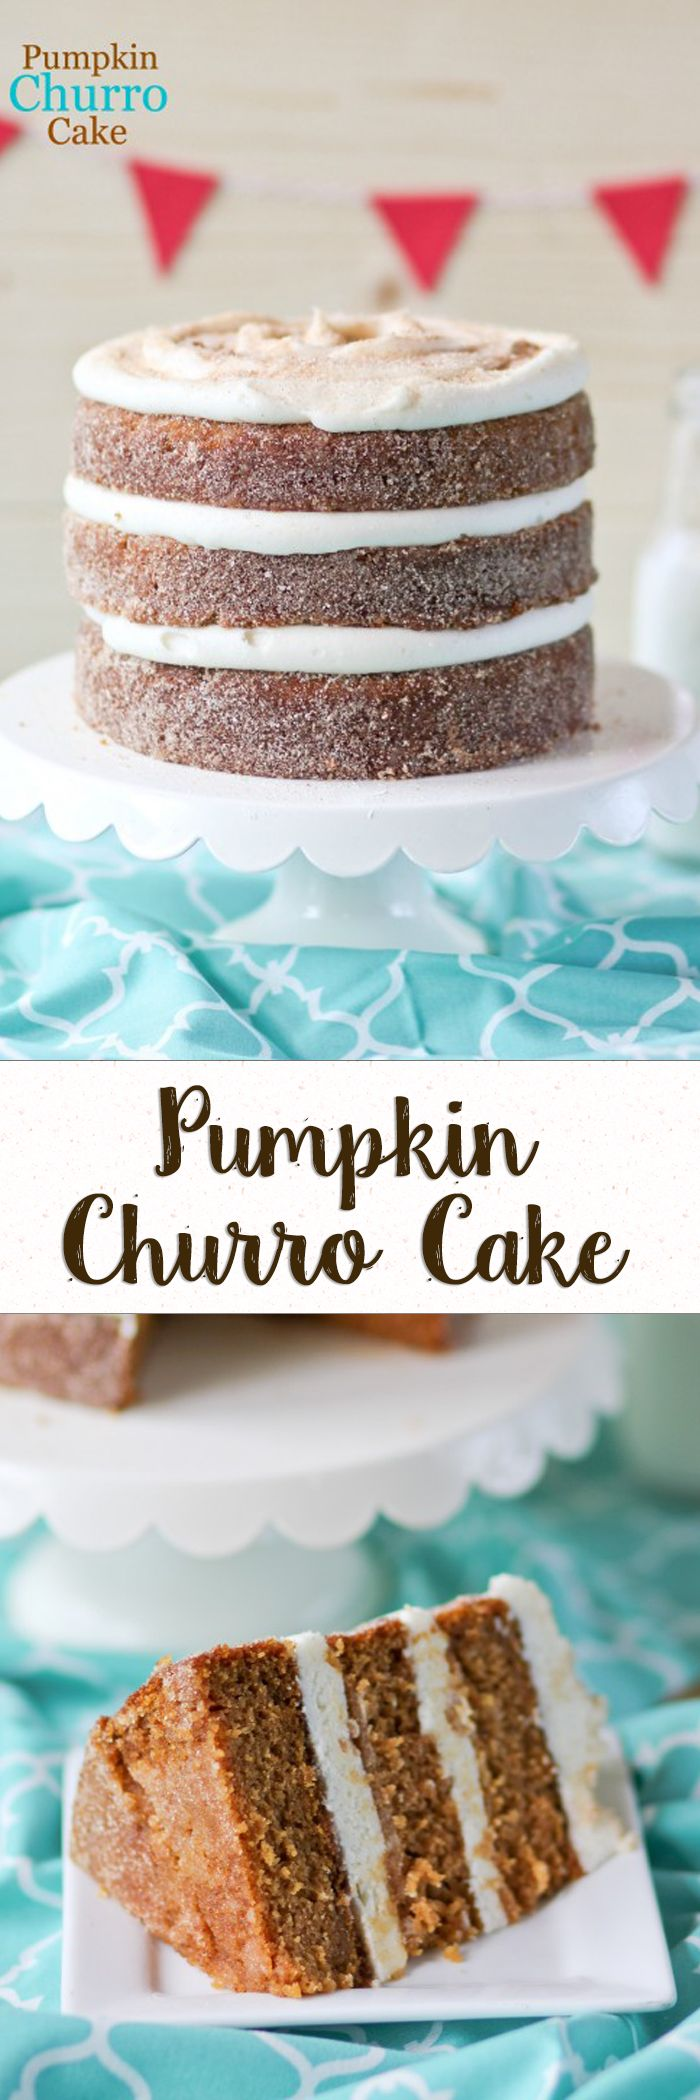 Pumpkin Churro Cake -- Moist pumpkin cake dipped in melted butter and coated in cinnamon sugar!